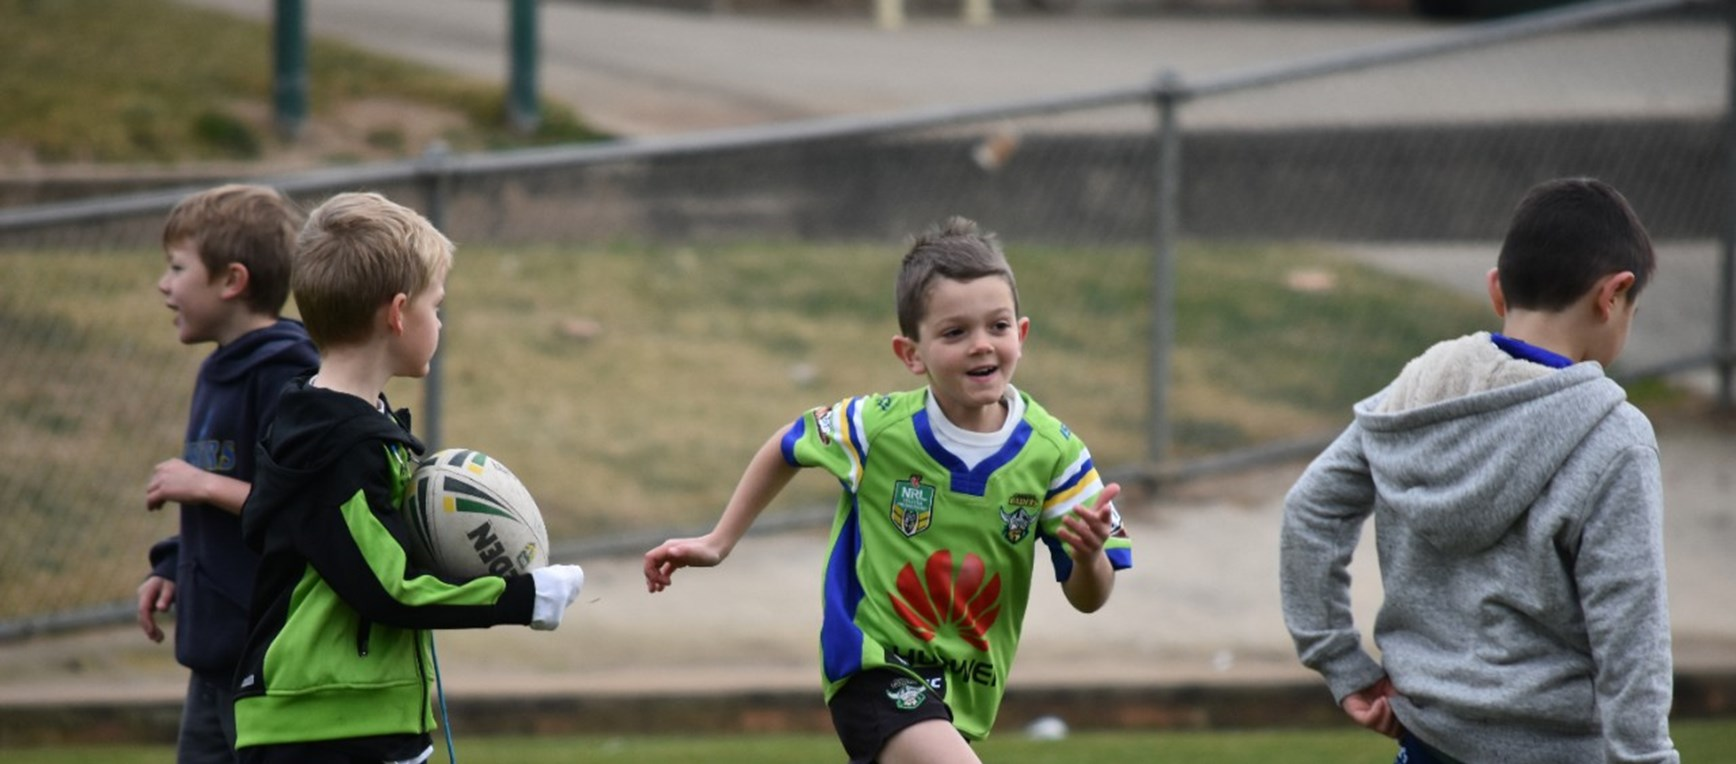 Gallery: Play NRL Canberra Clinic